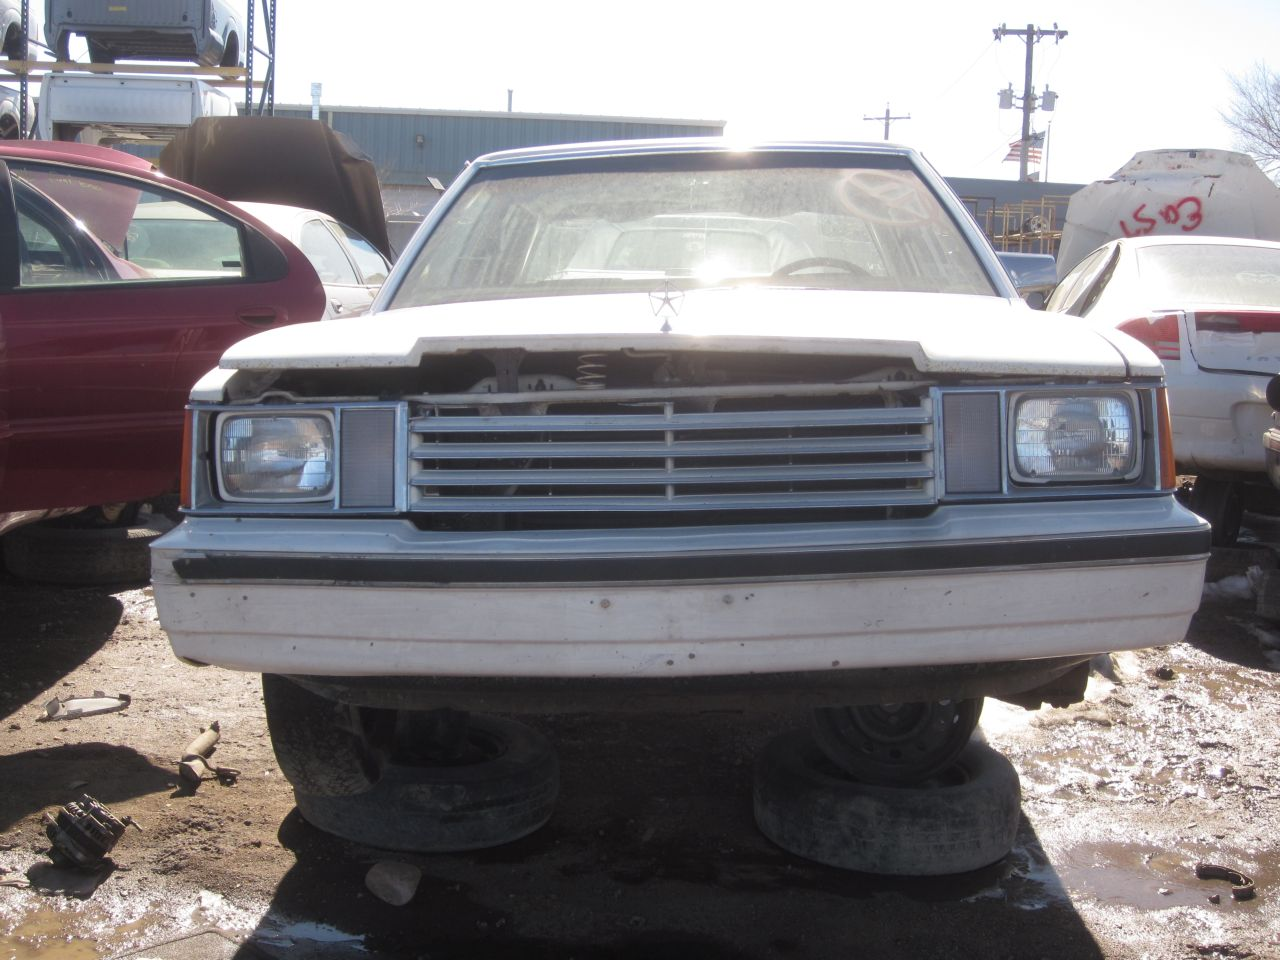 1988 turbo coupe wiring diagrams with 1976 Plymouth Reliant Wagon Wiring Diagrams on RepairGuideContent besides Engine Immobilizer Wiring Diagram additionally Injector Woes as well Msd 6a Digital Ignition 7995 Install moreover A C Clutch Will Not Engage But Air Will Blow.